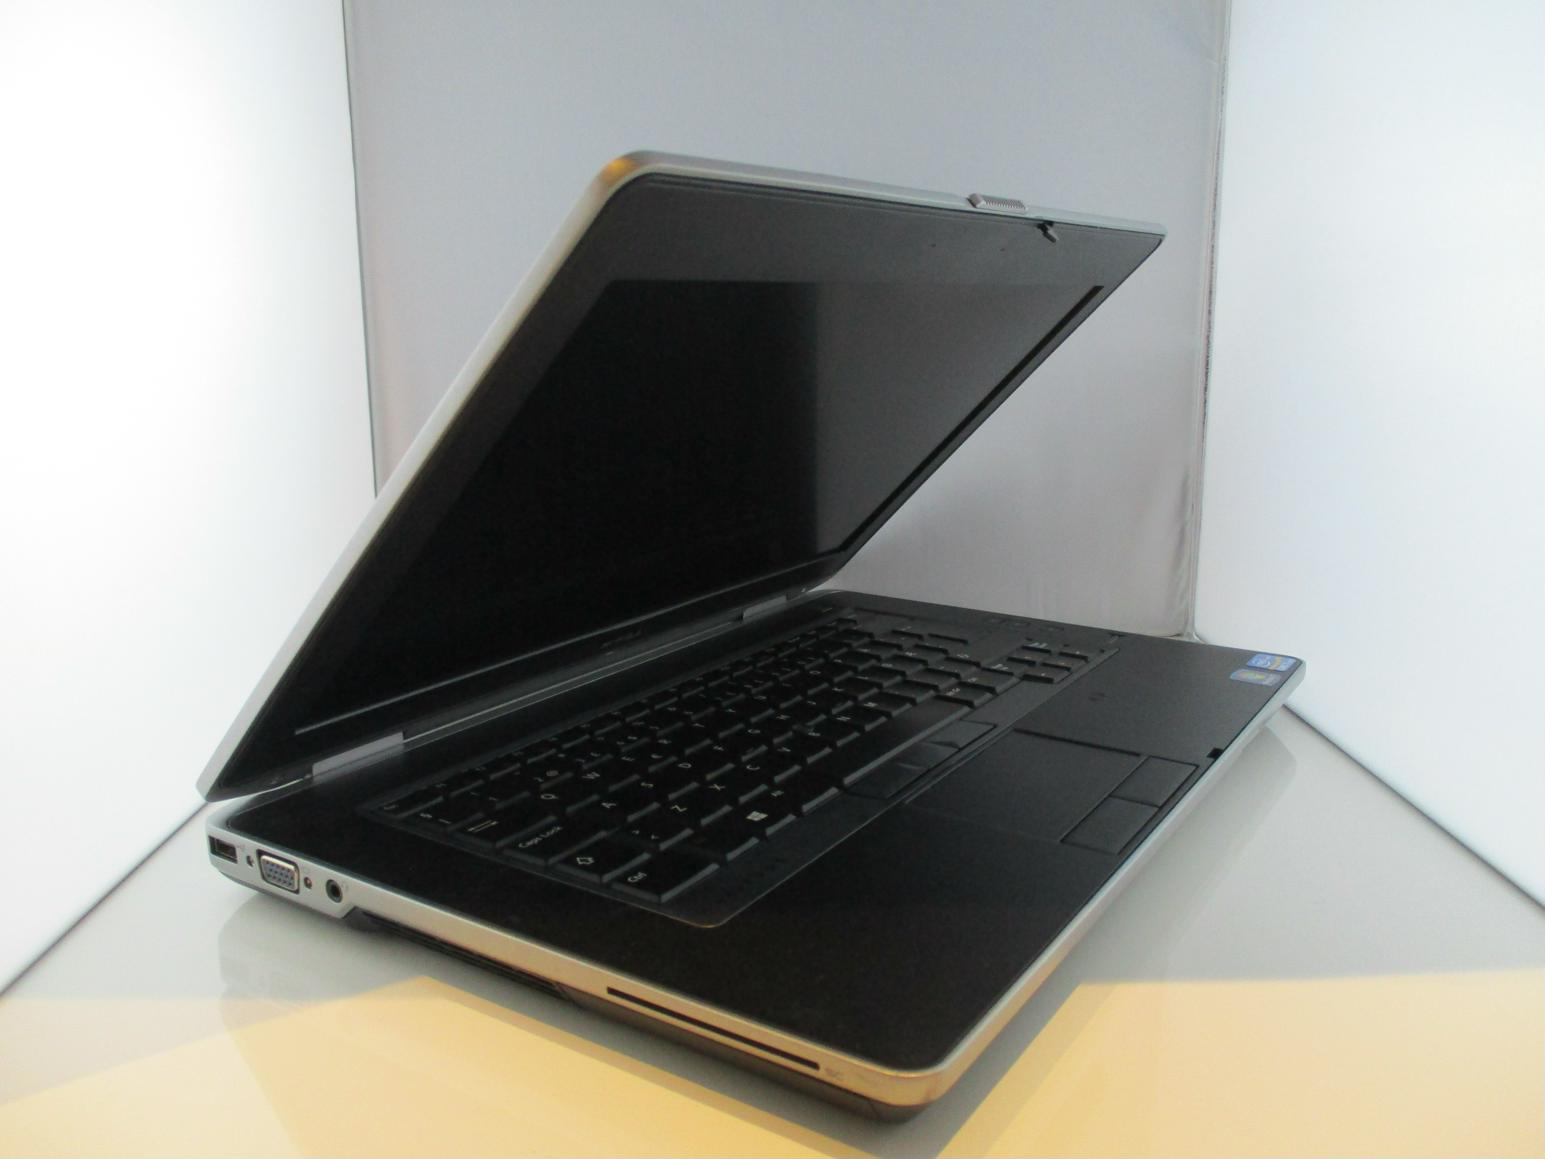 Dell Latitude E6430 i5-3320M R-4GB,H-128SSD,14